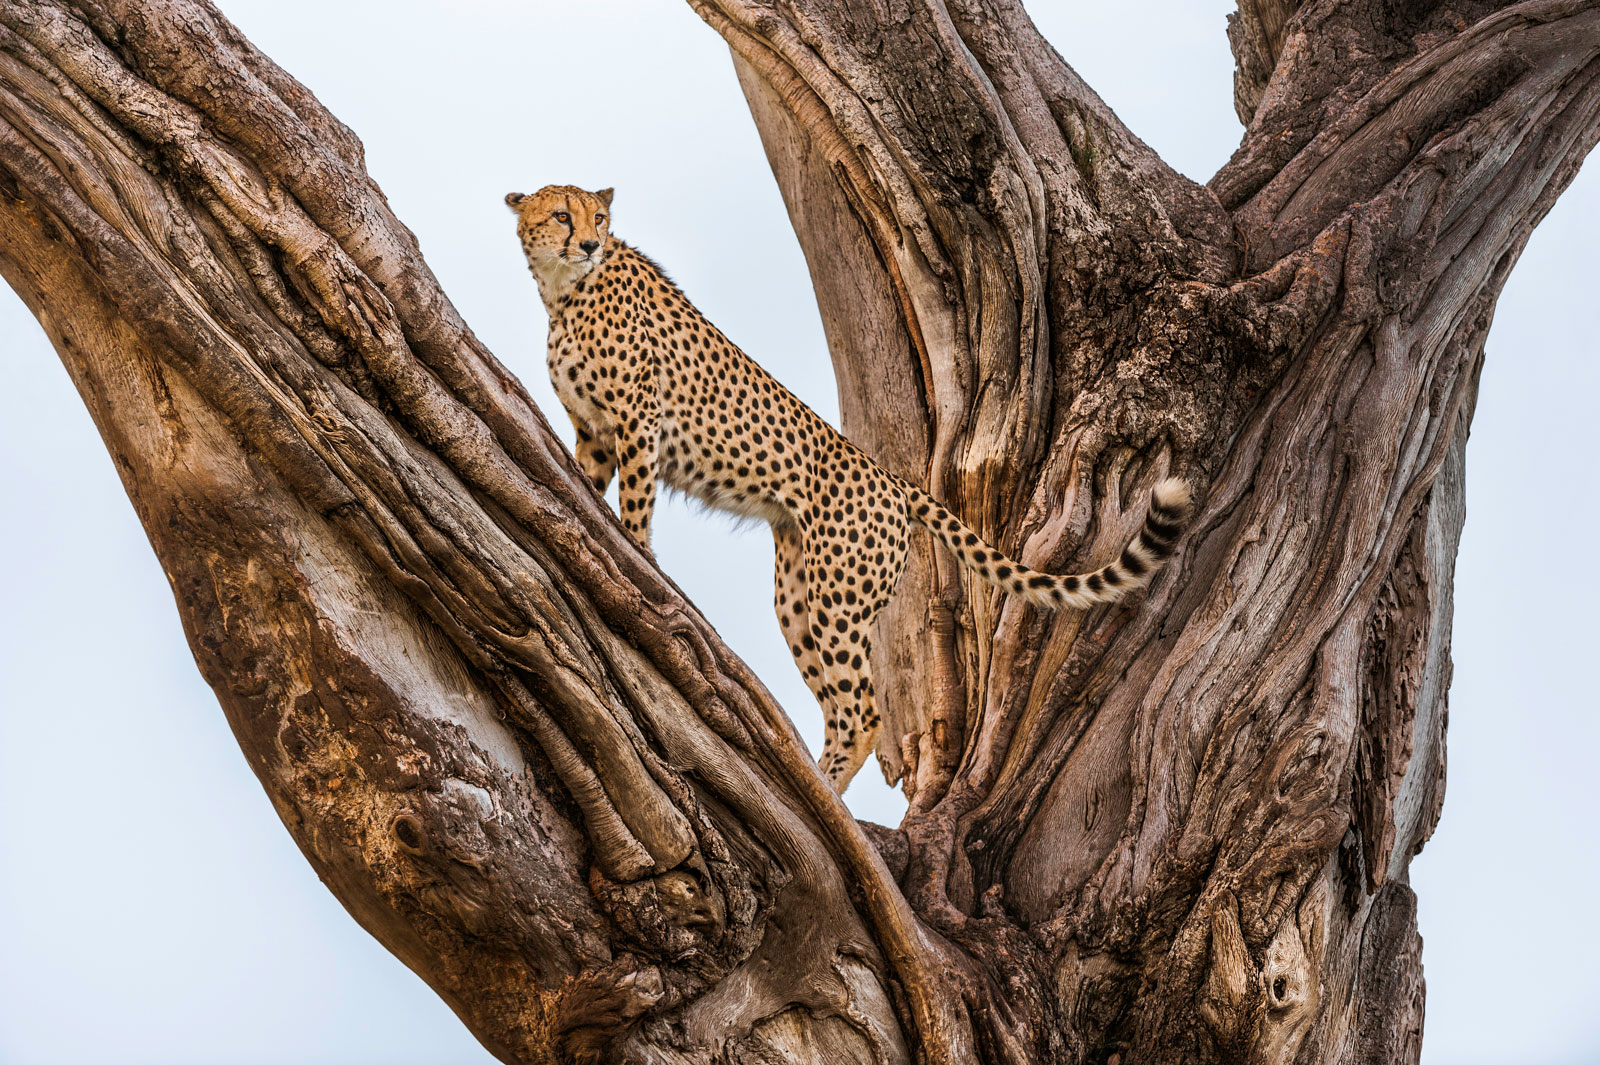 Cheetah male in fig tree, Masai Mara National Reserve, Kenya